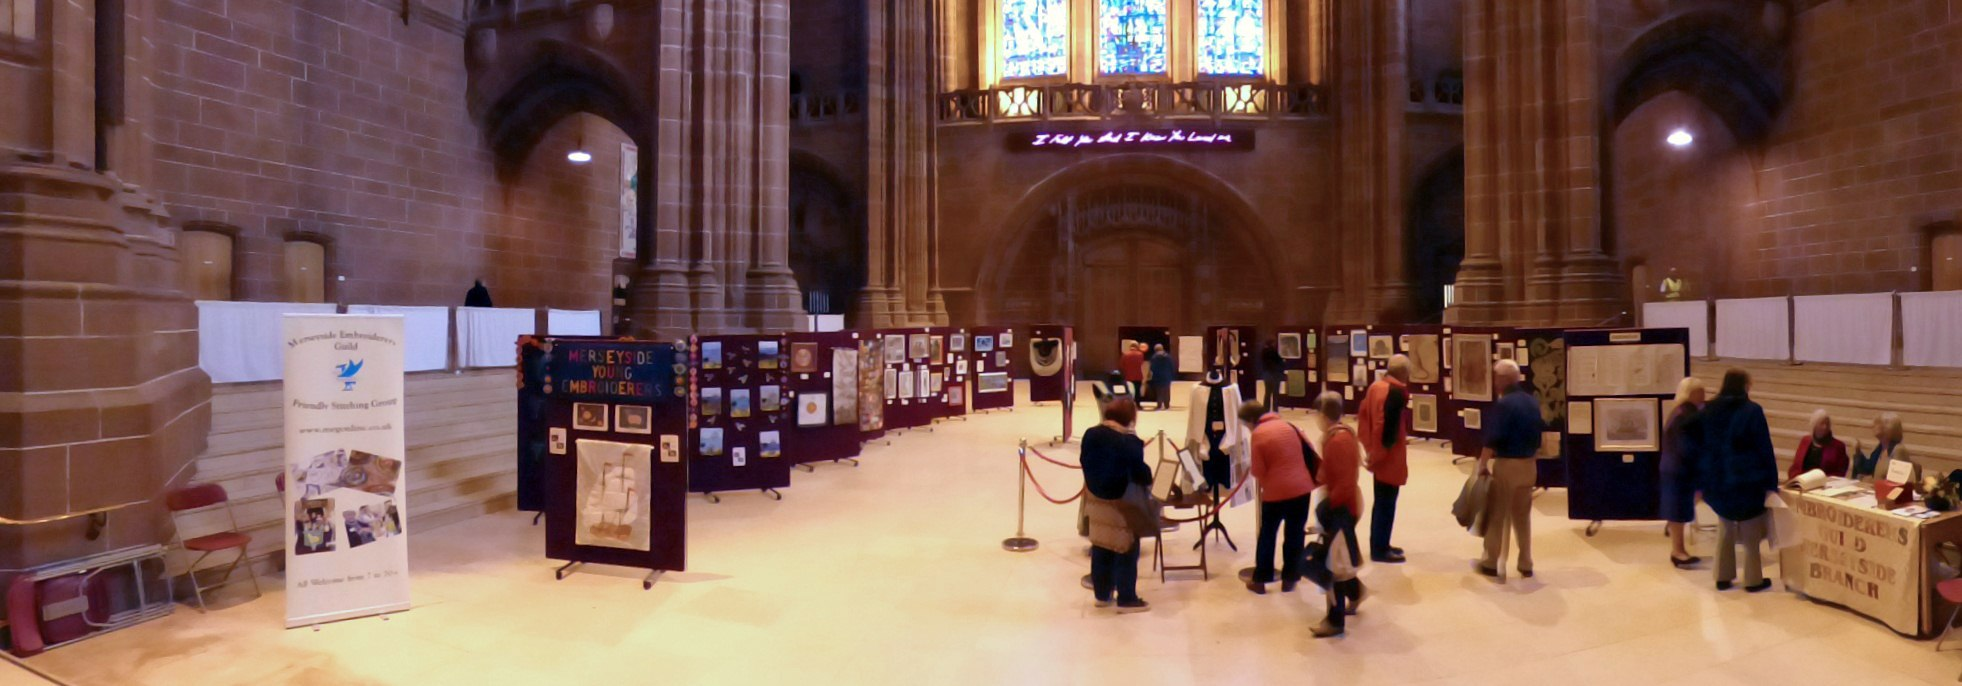 Endeavour exhibition, Liverpool Cathedral, Sept 2018